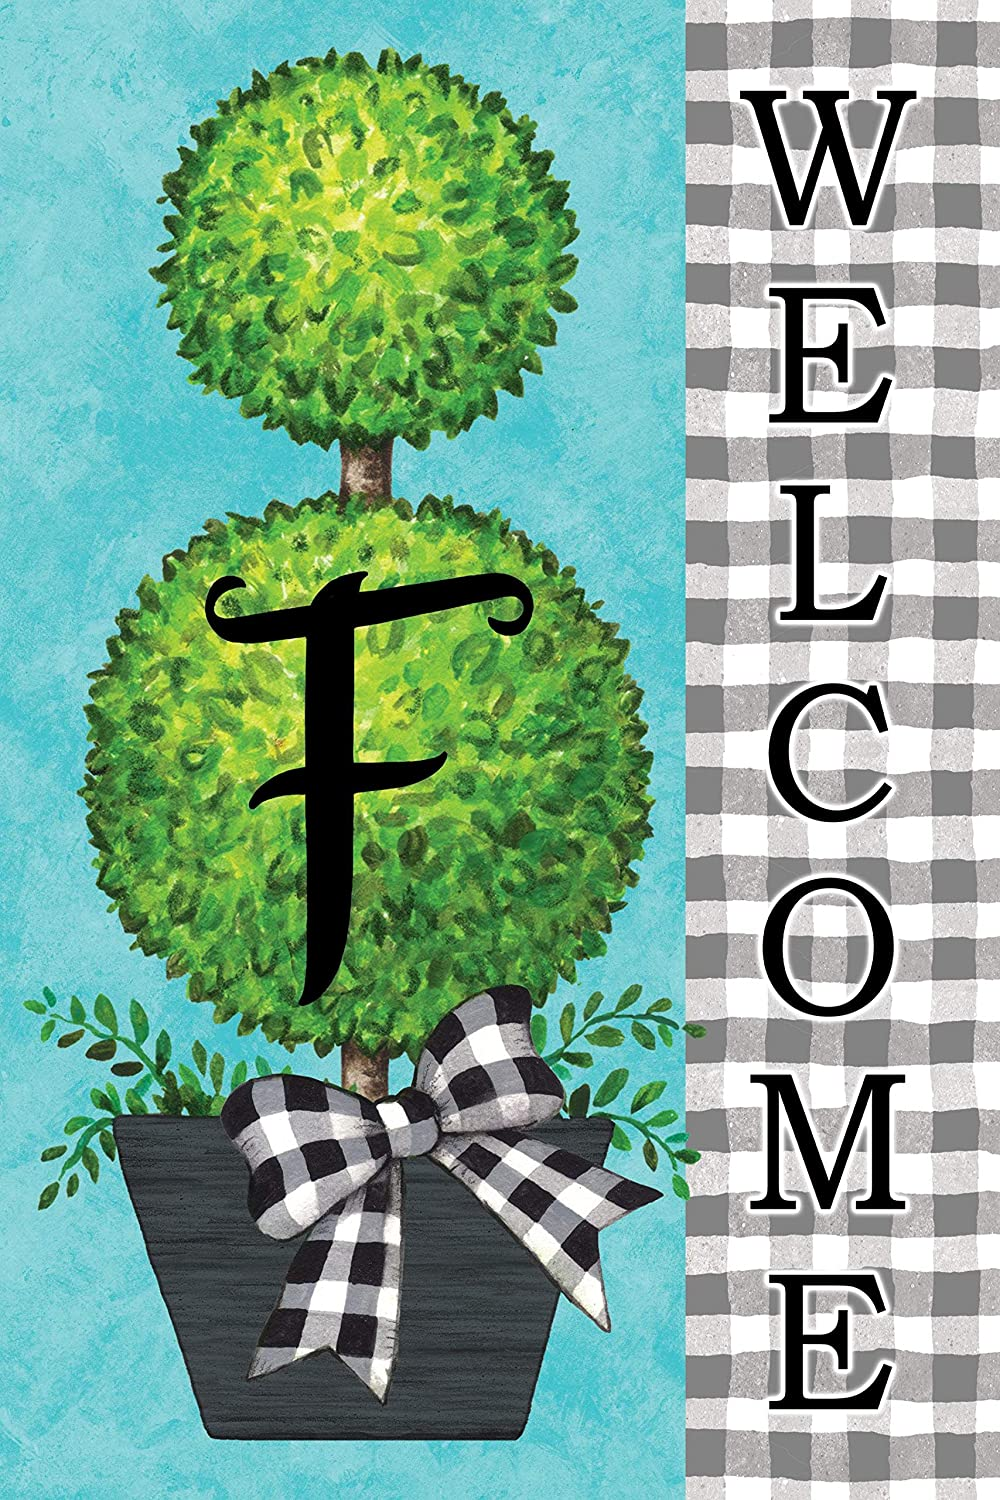 Custom Decor Gingham Topiary - Letter F - Embroidered Monogram - Decorative Double Sided Flag - Garden Size, 12 Inch X 18 Inch, Licensed, Copyright & Trademark CDI. USA